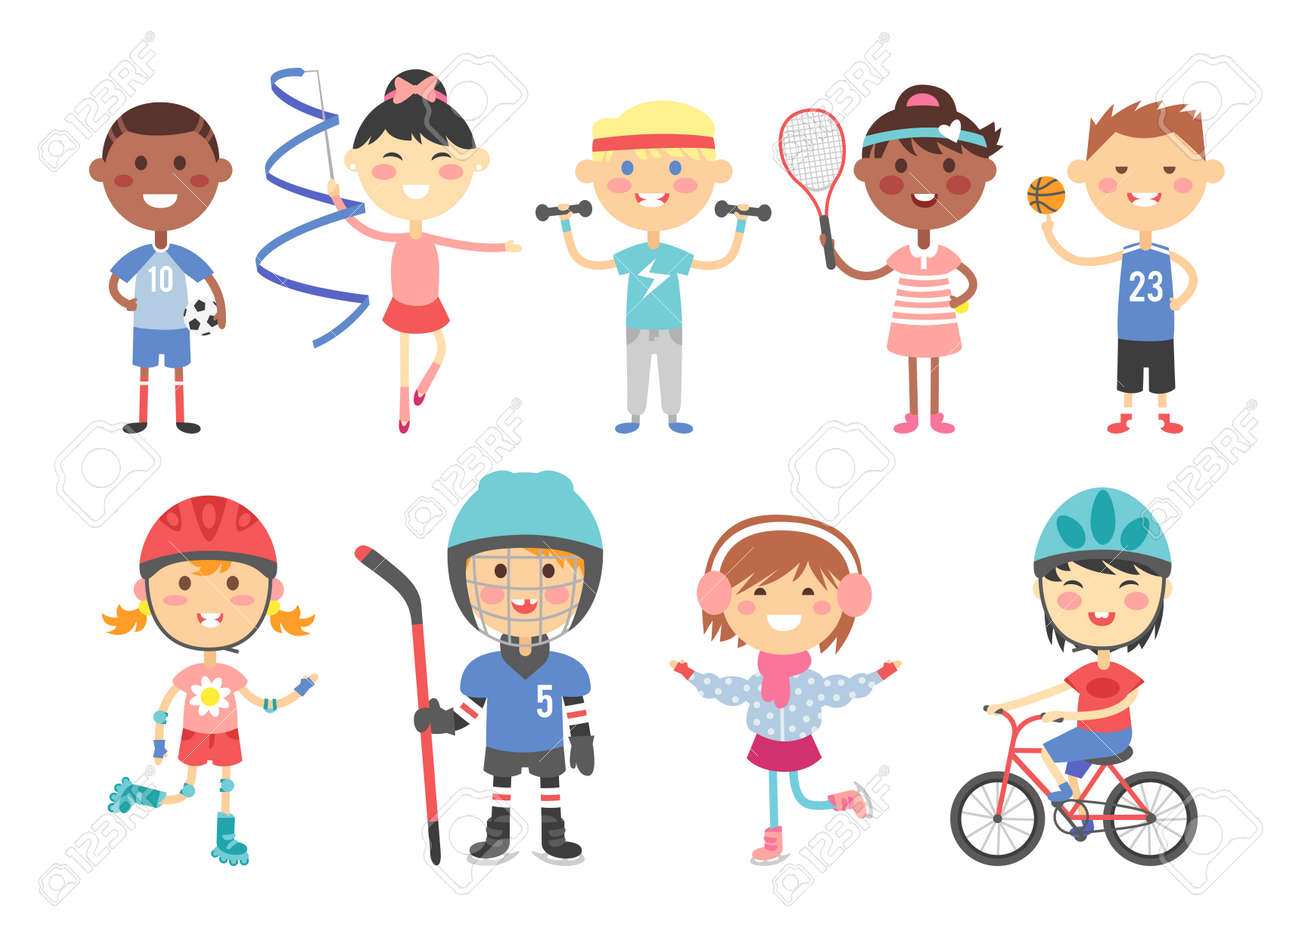 sport kids characters with toys and sport kids activity group kids playing various sports games - Sports Images For Kids